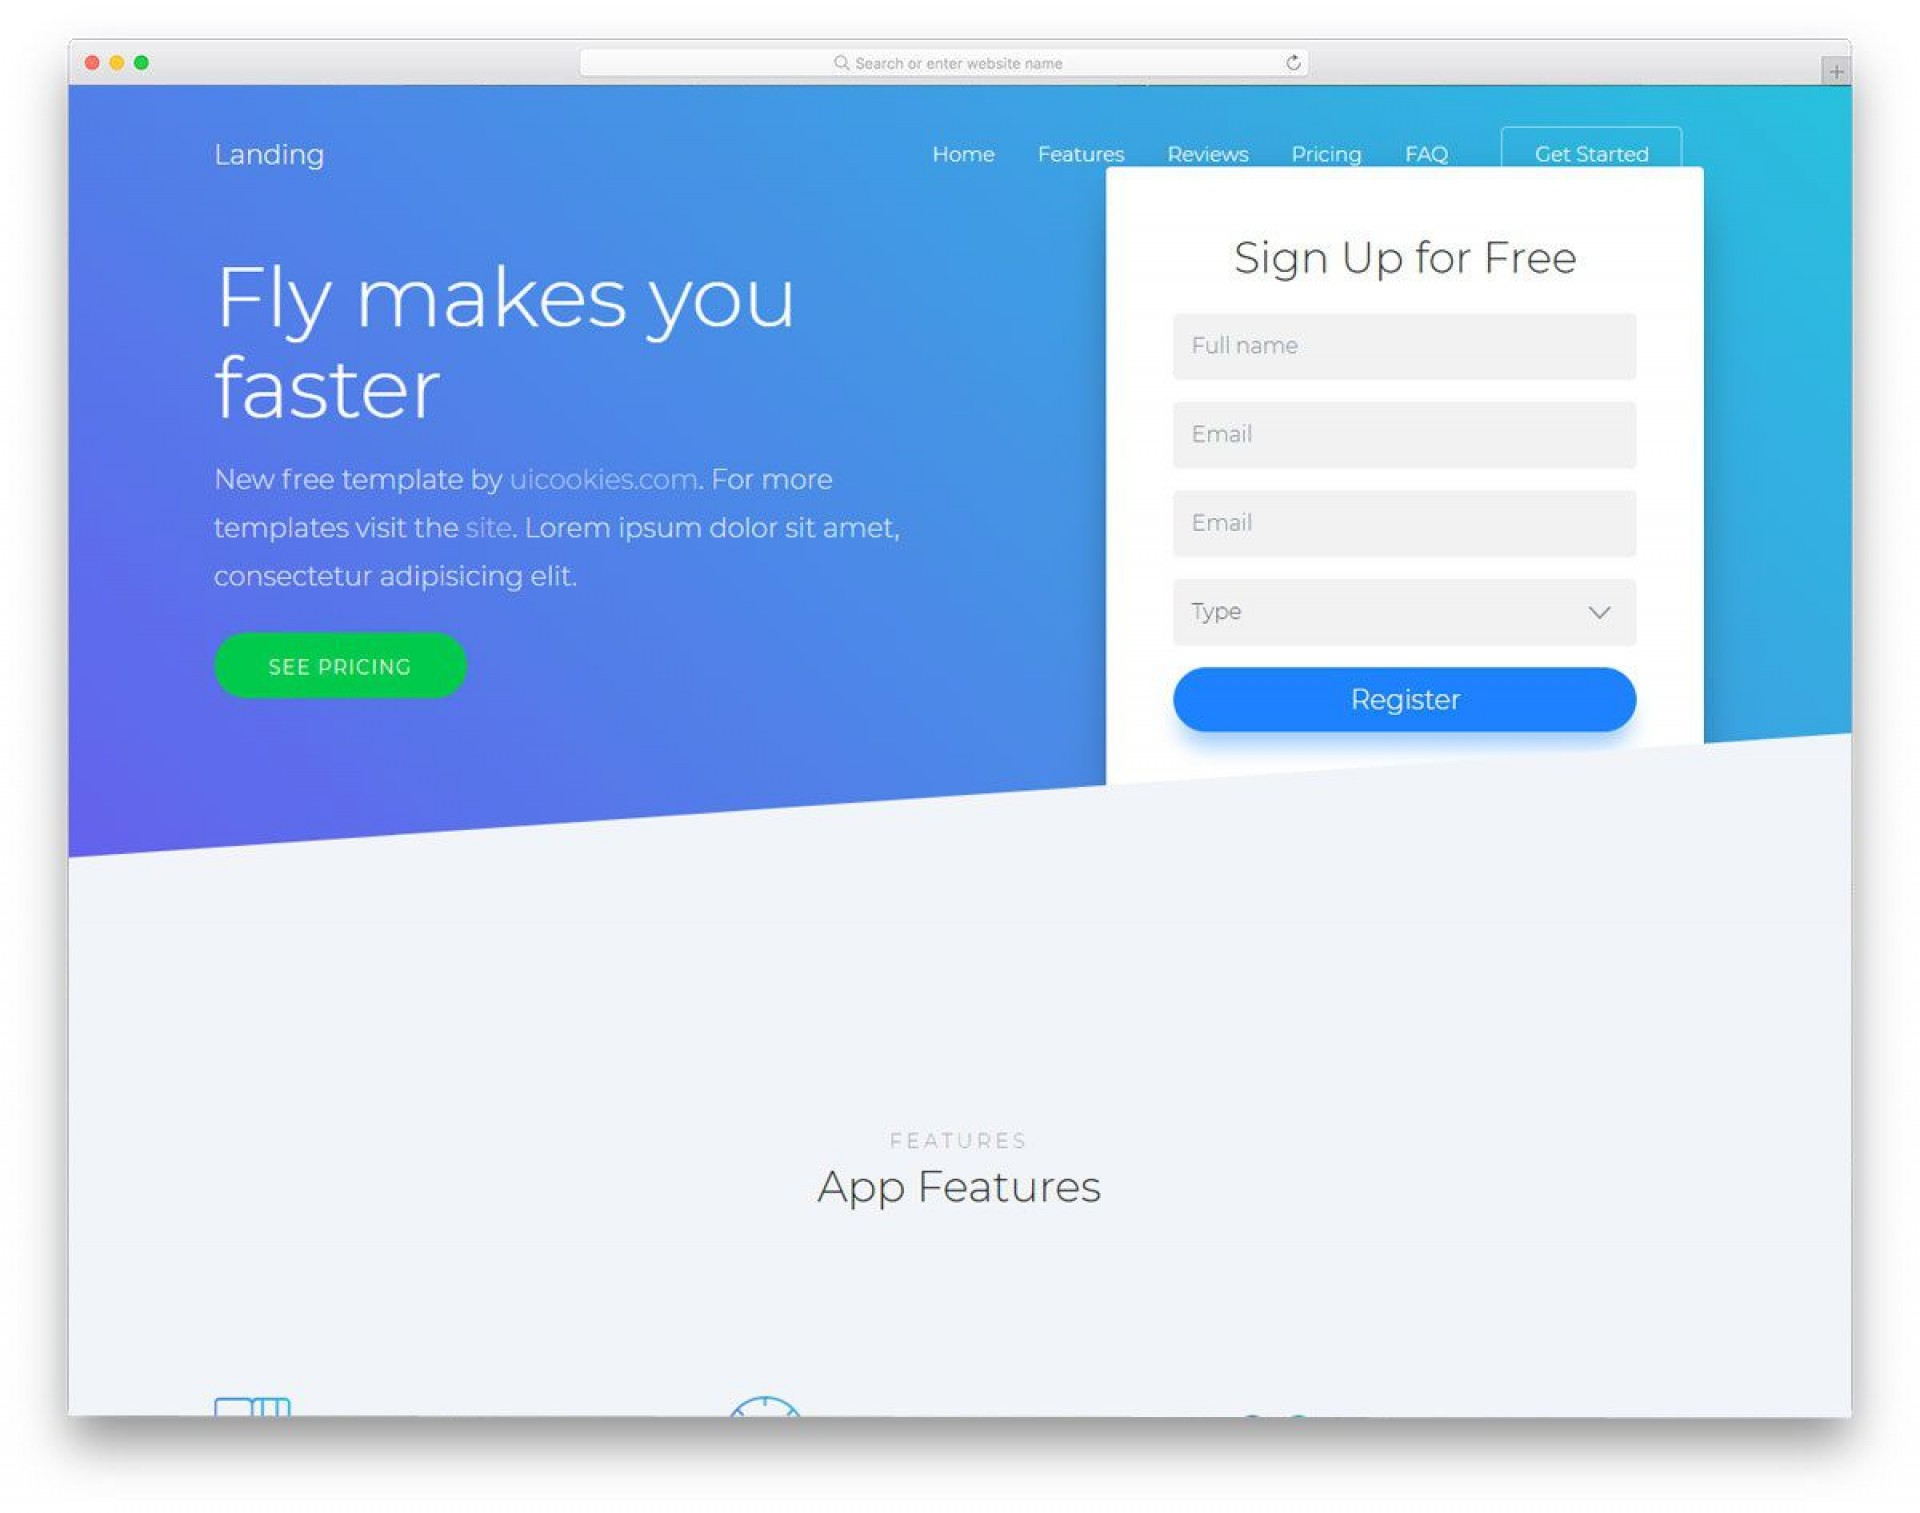 006 Staggering Simple Landing Page Template High Def  Html Bootstrap Free1920